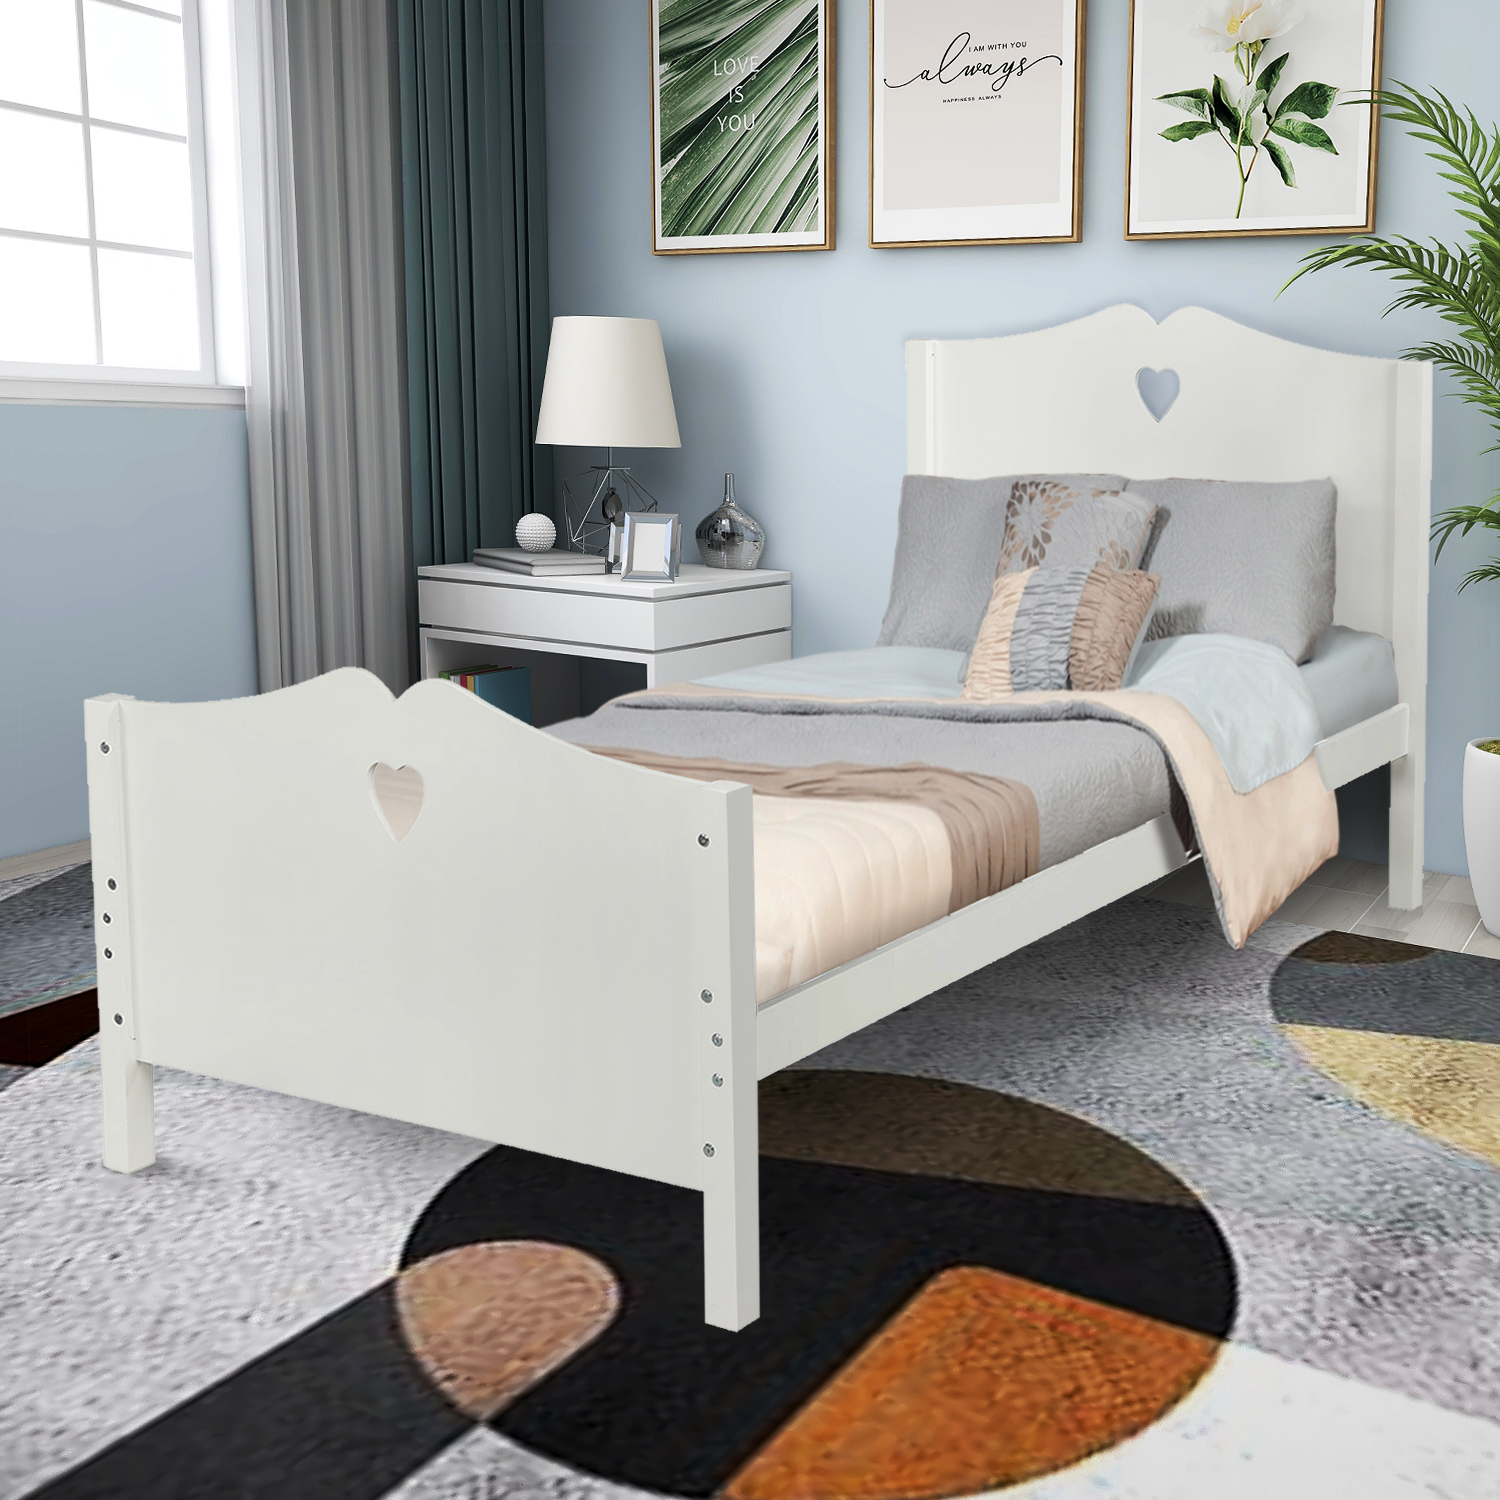 Children S Room Bed Frame Platform Bed Frame For Guest Bedroom Twin Bed Frame With Headboard And Footboard Modern Simple Twin Bed Frame With Wooden Slat Support No Box Spring Needed White Y2077